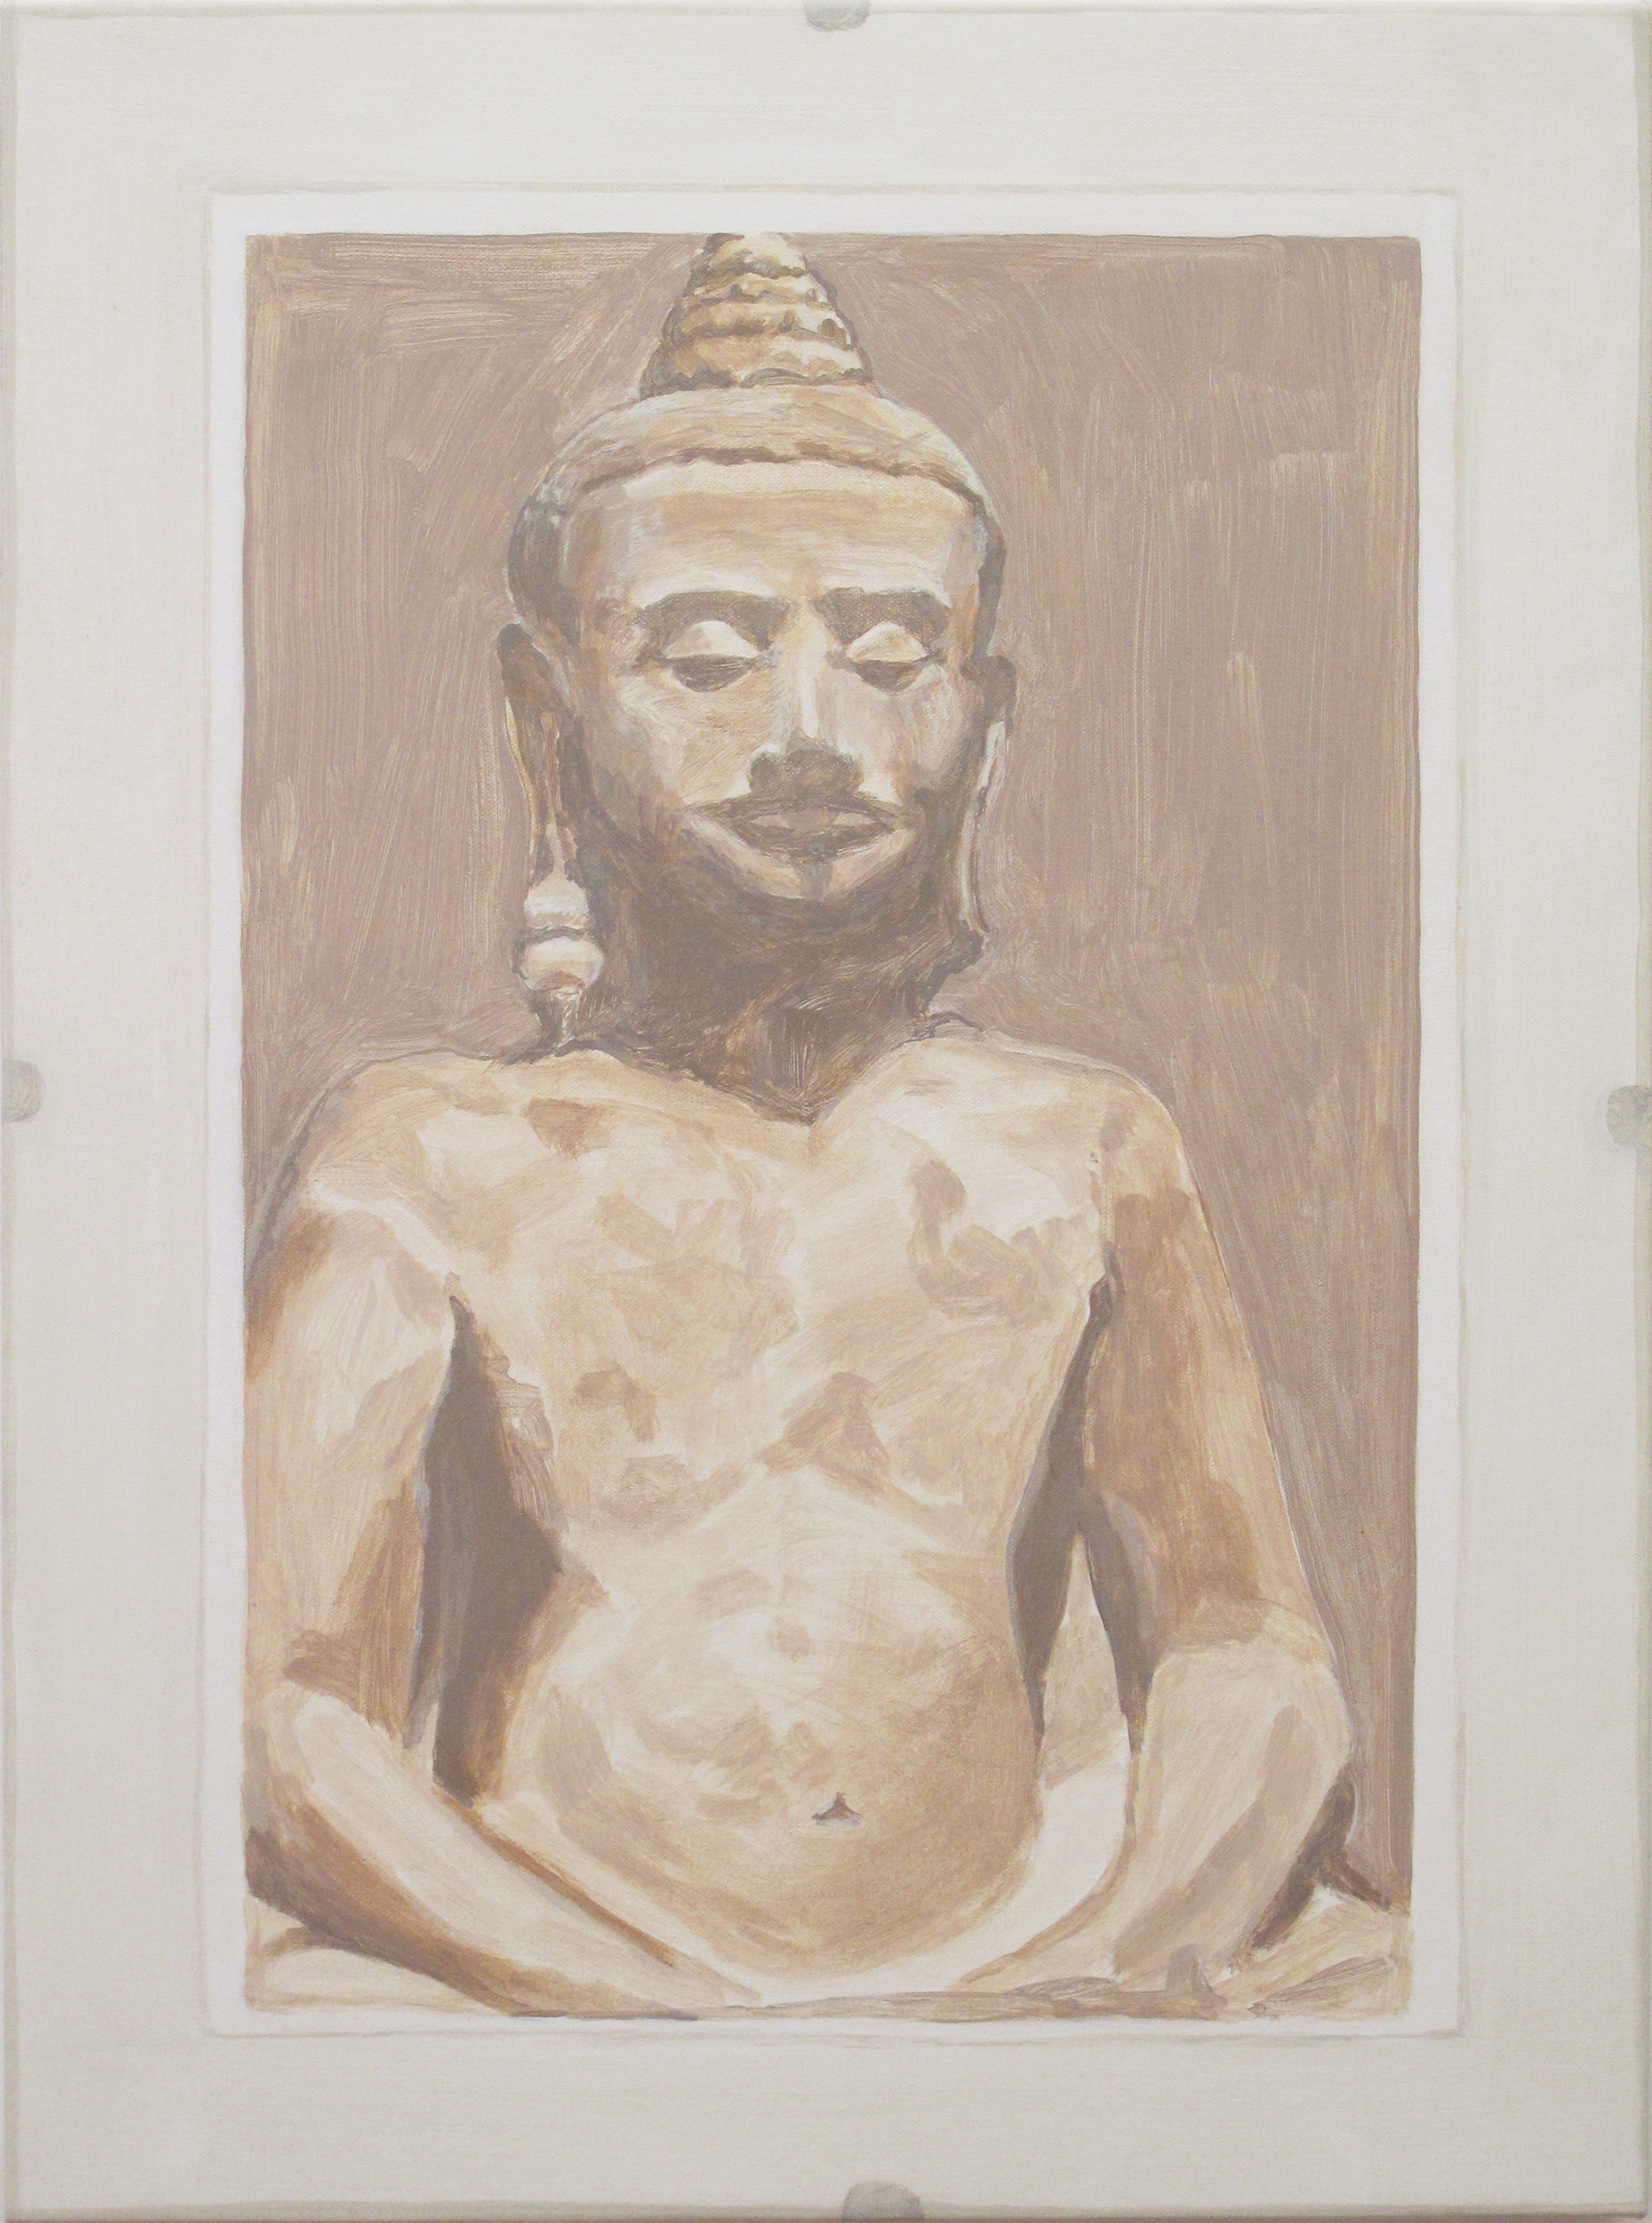 Framed Photo: Buddha, acrylic on canvas, 23 x 17 inches, 2016.